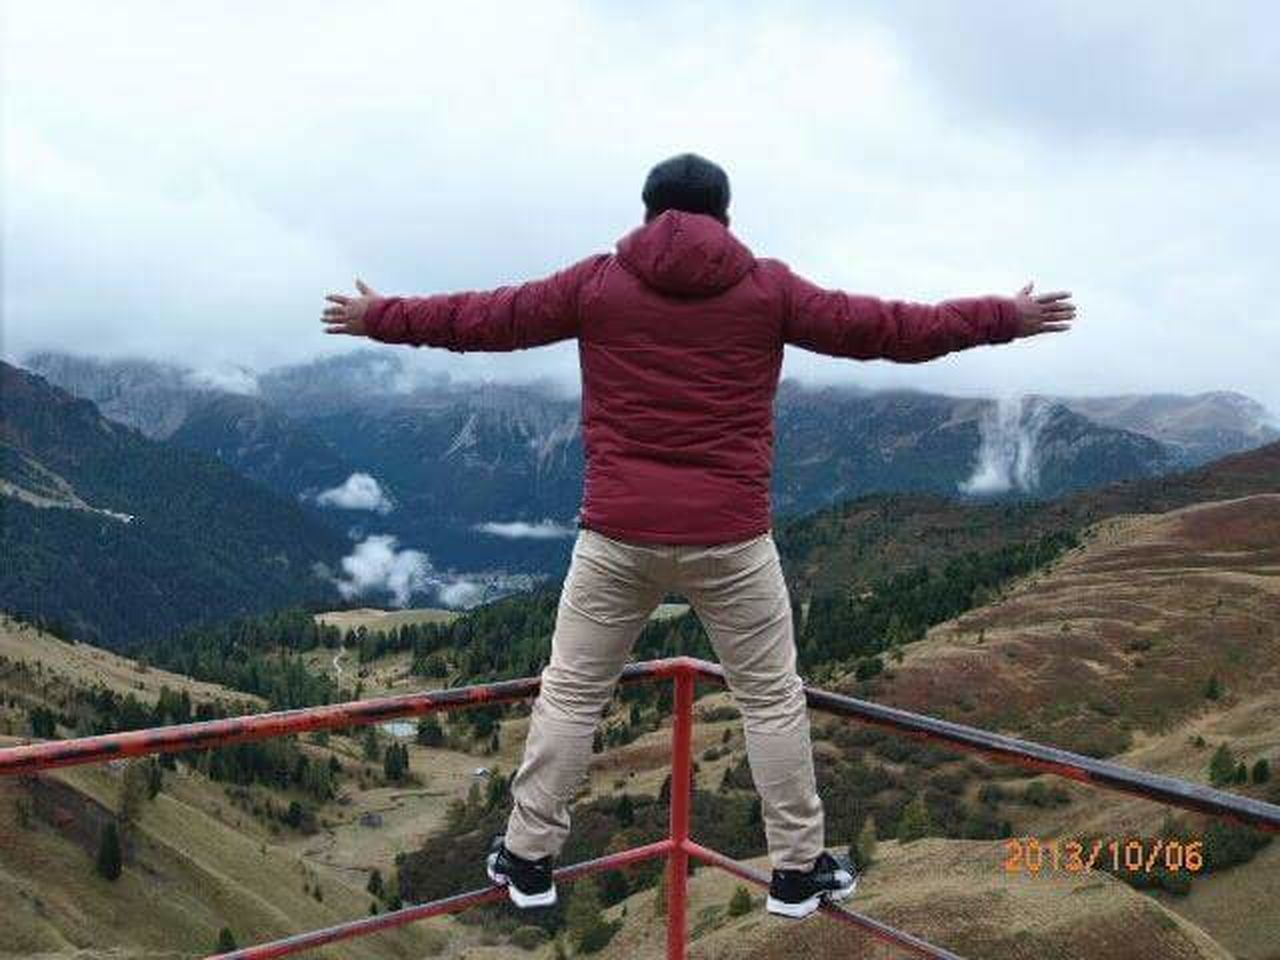 mountain, mountain range, rear view, nature, scenics, beauty in nature, standing, outdoors, one person, day, landscape, adult, sky, one man only, adventure, adults only, men, people, only men